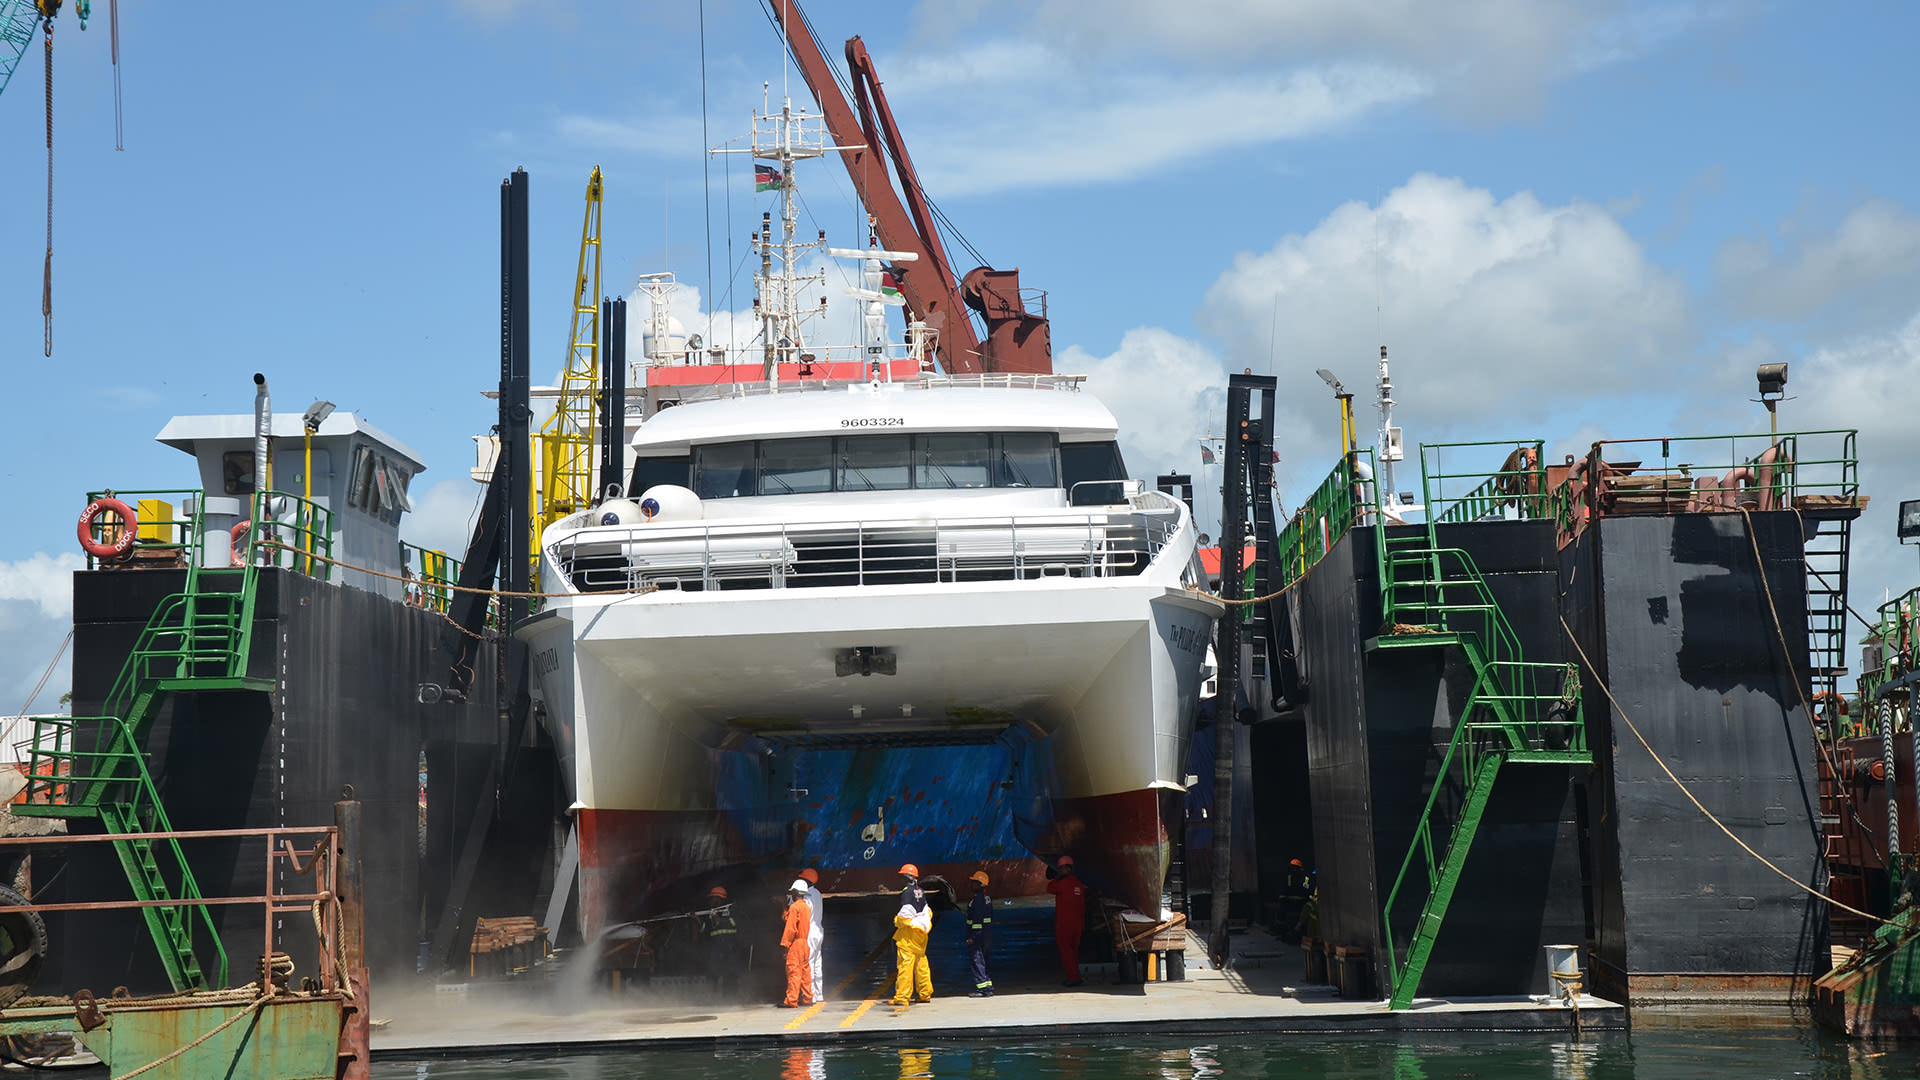 SECO-DRY DOCKING, SHIP REPAIRS & SHIPYARD SERVICES